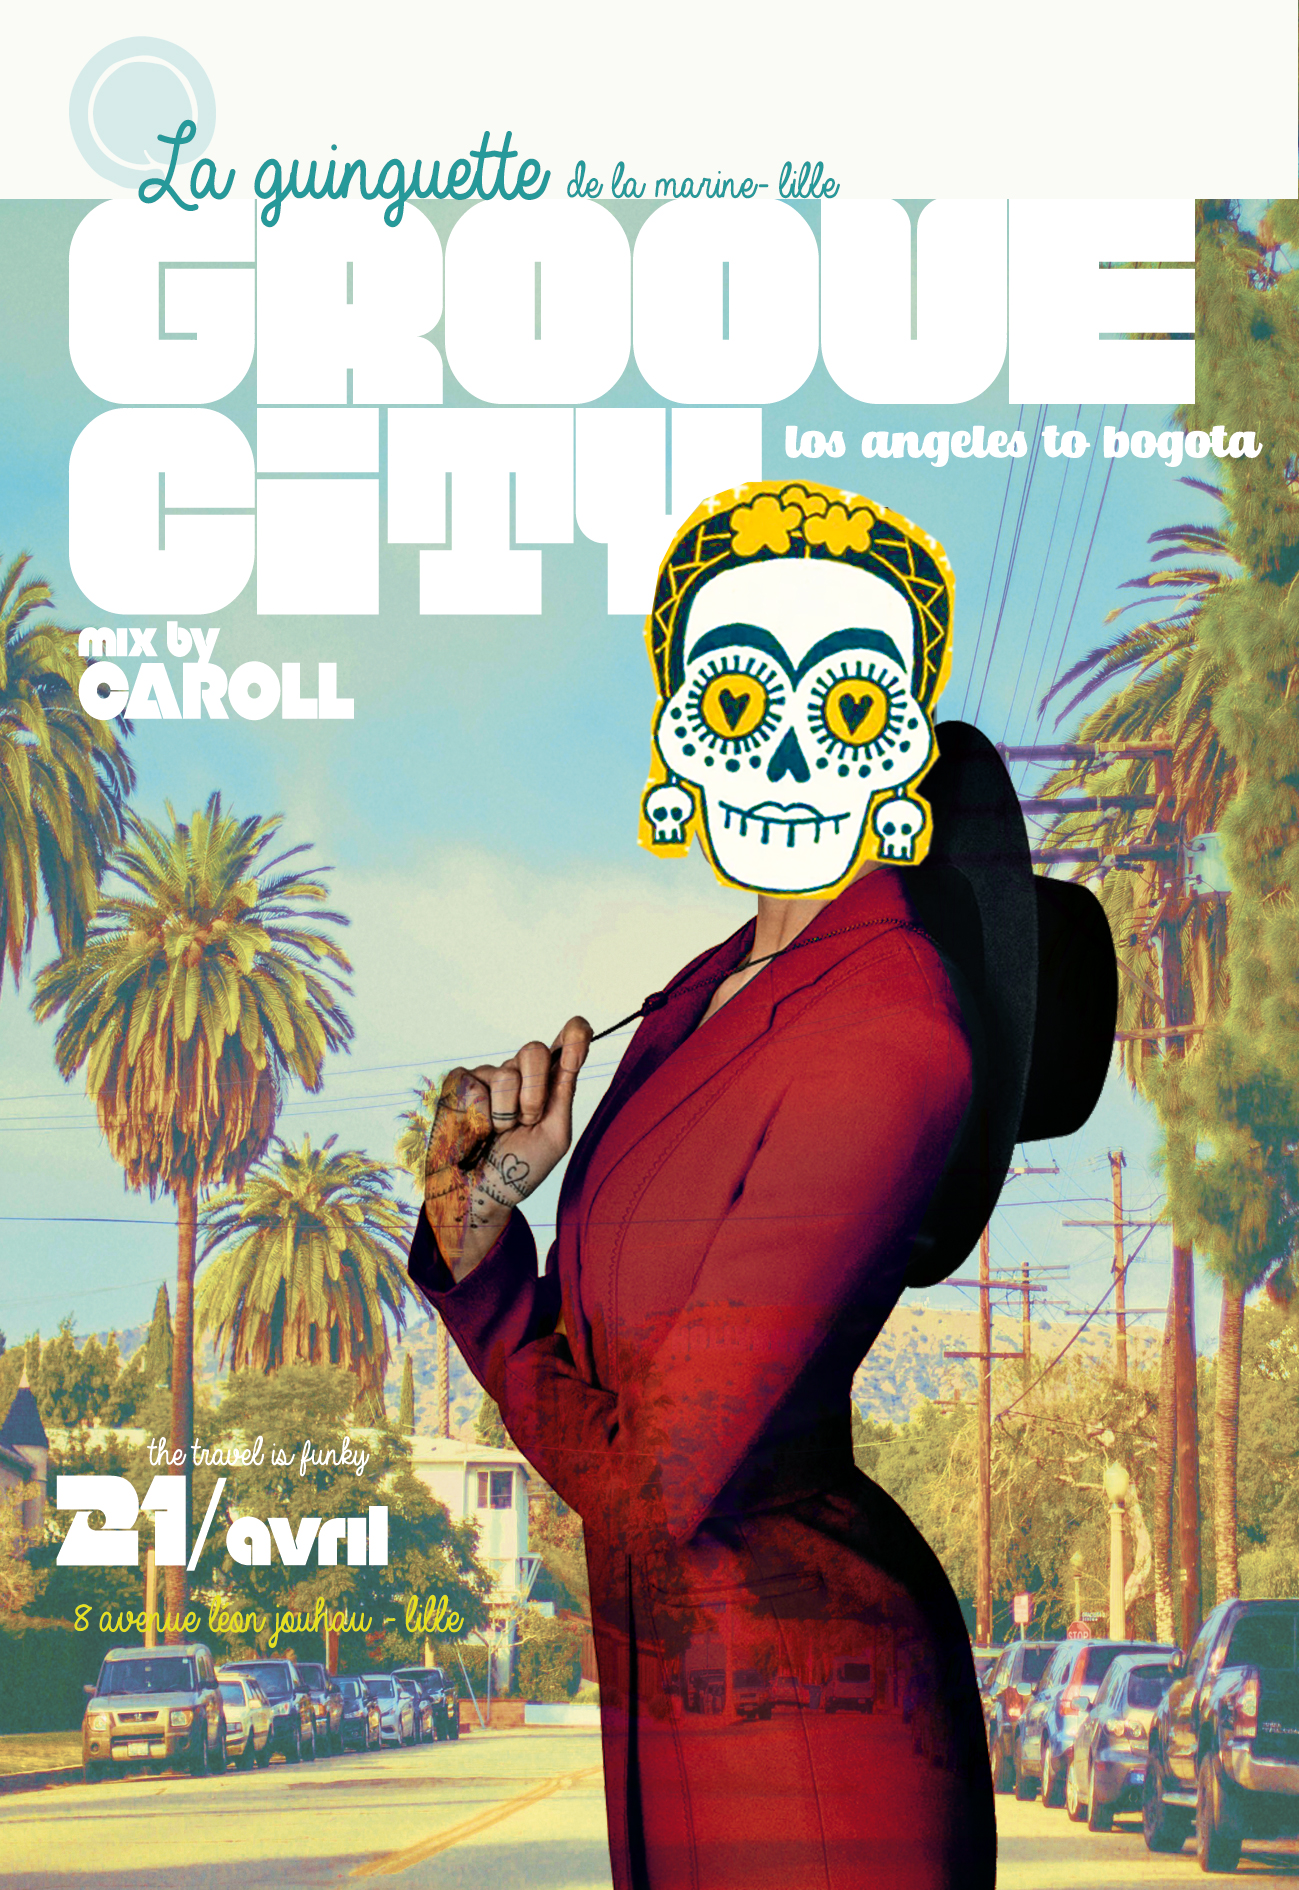 Groove City Mix by Caroll